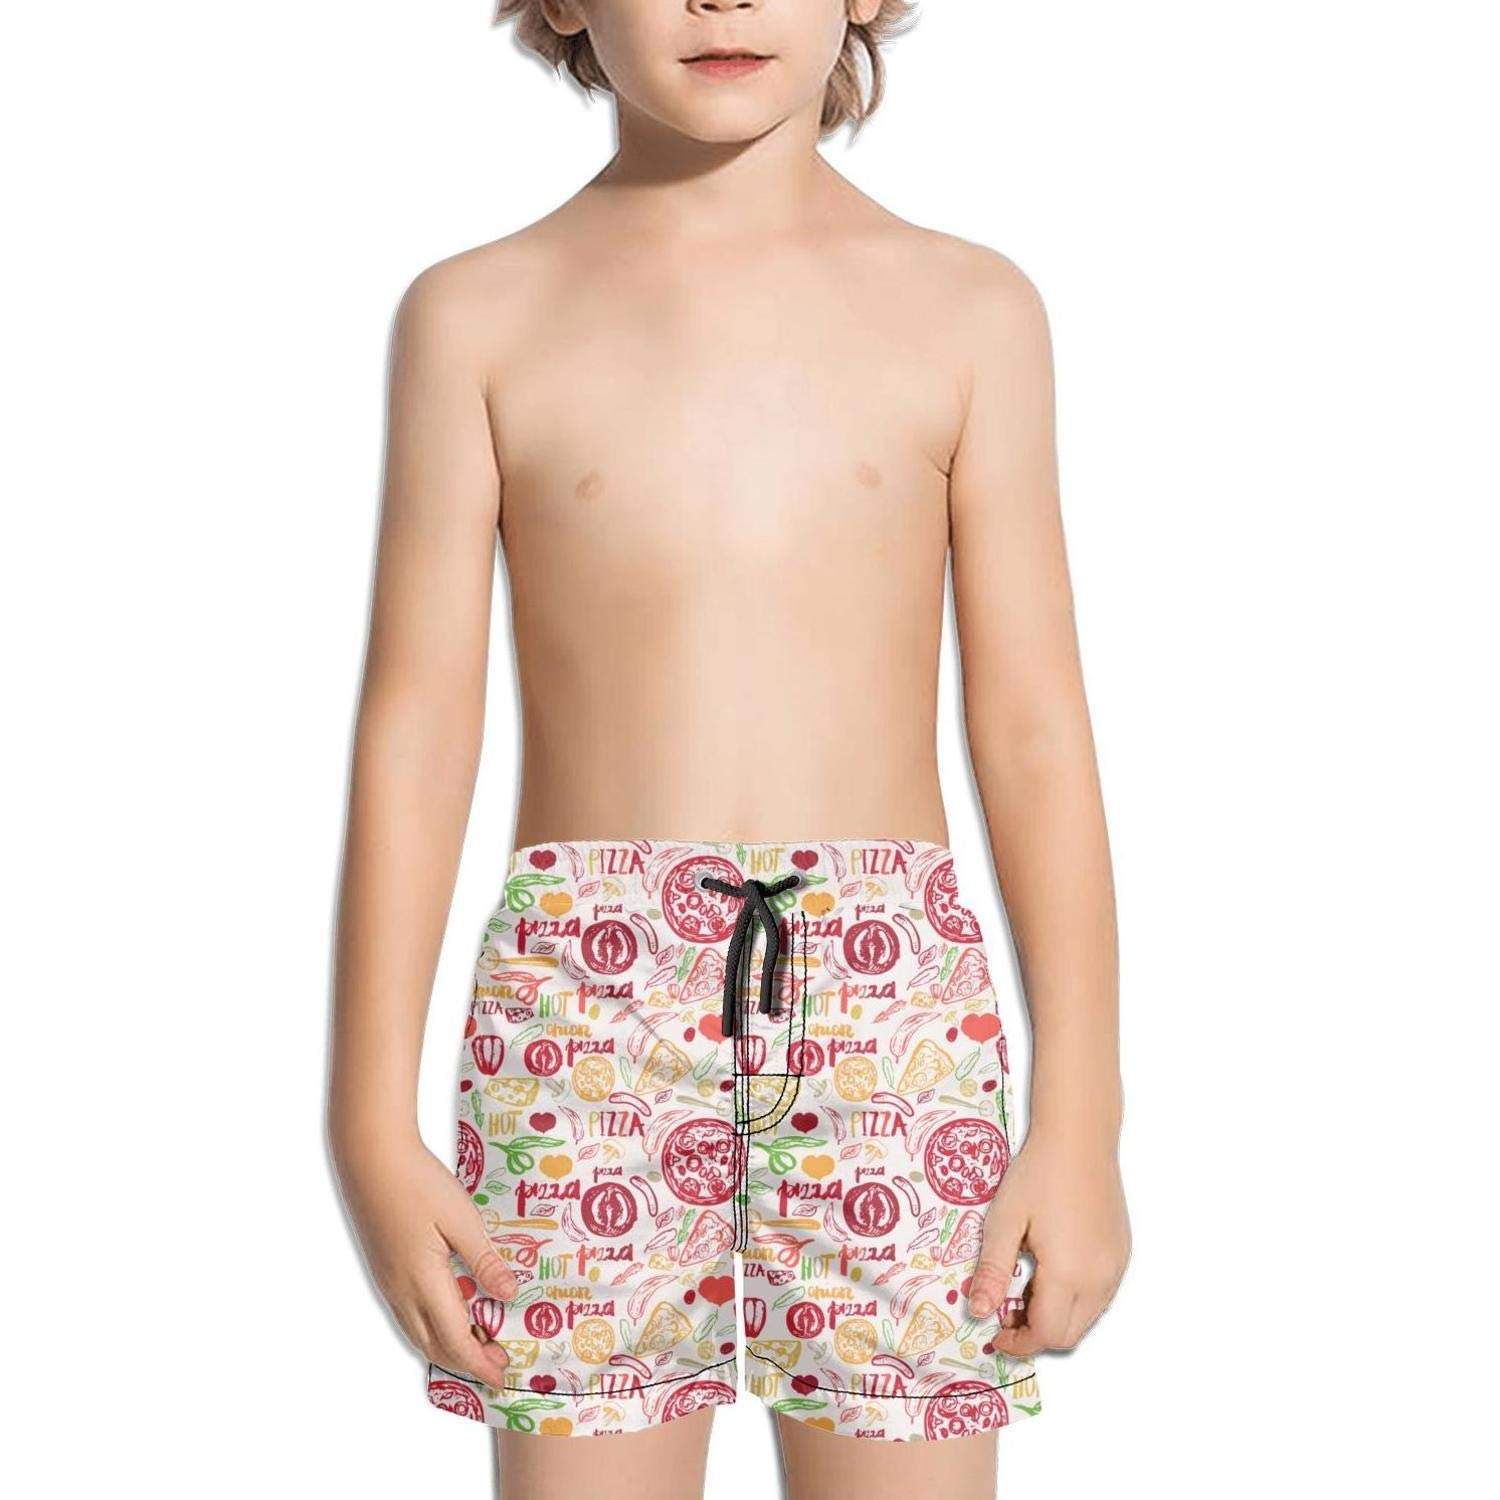 LKIMNJ Boys Board Shorts Pizza Triangle Party Gold Quick Dry Bathing Suits Beach Board Shorts